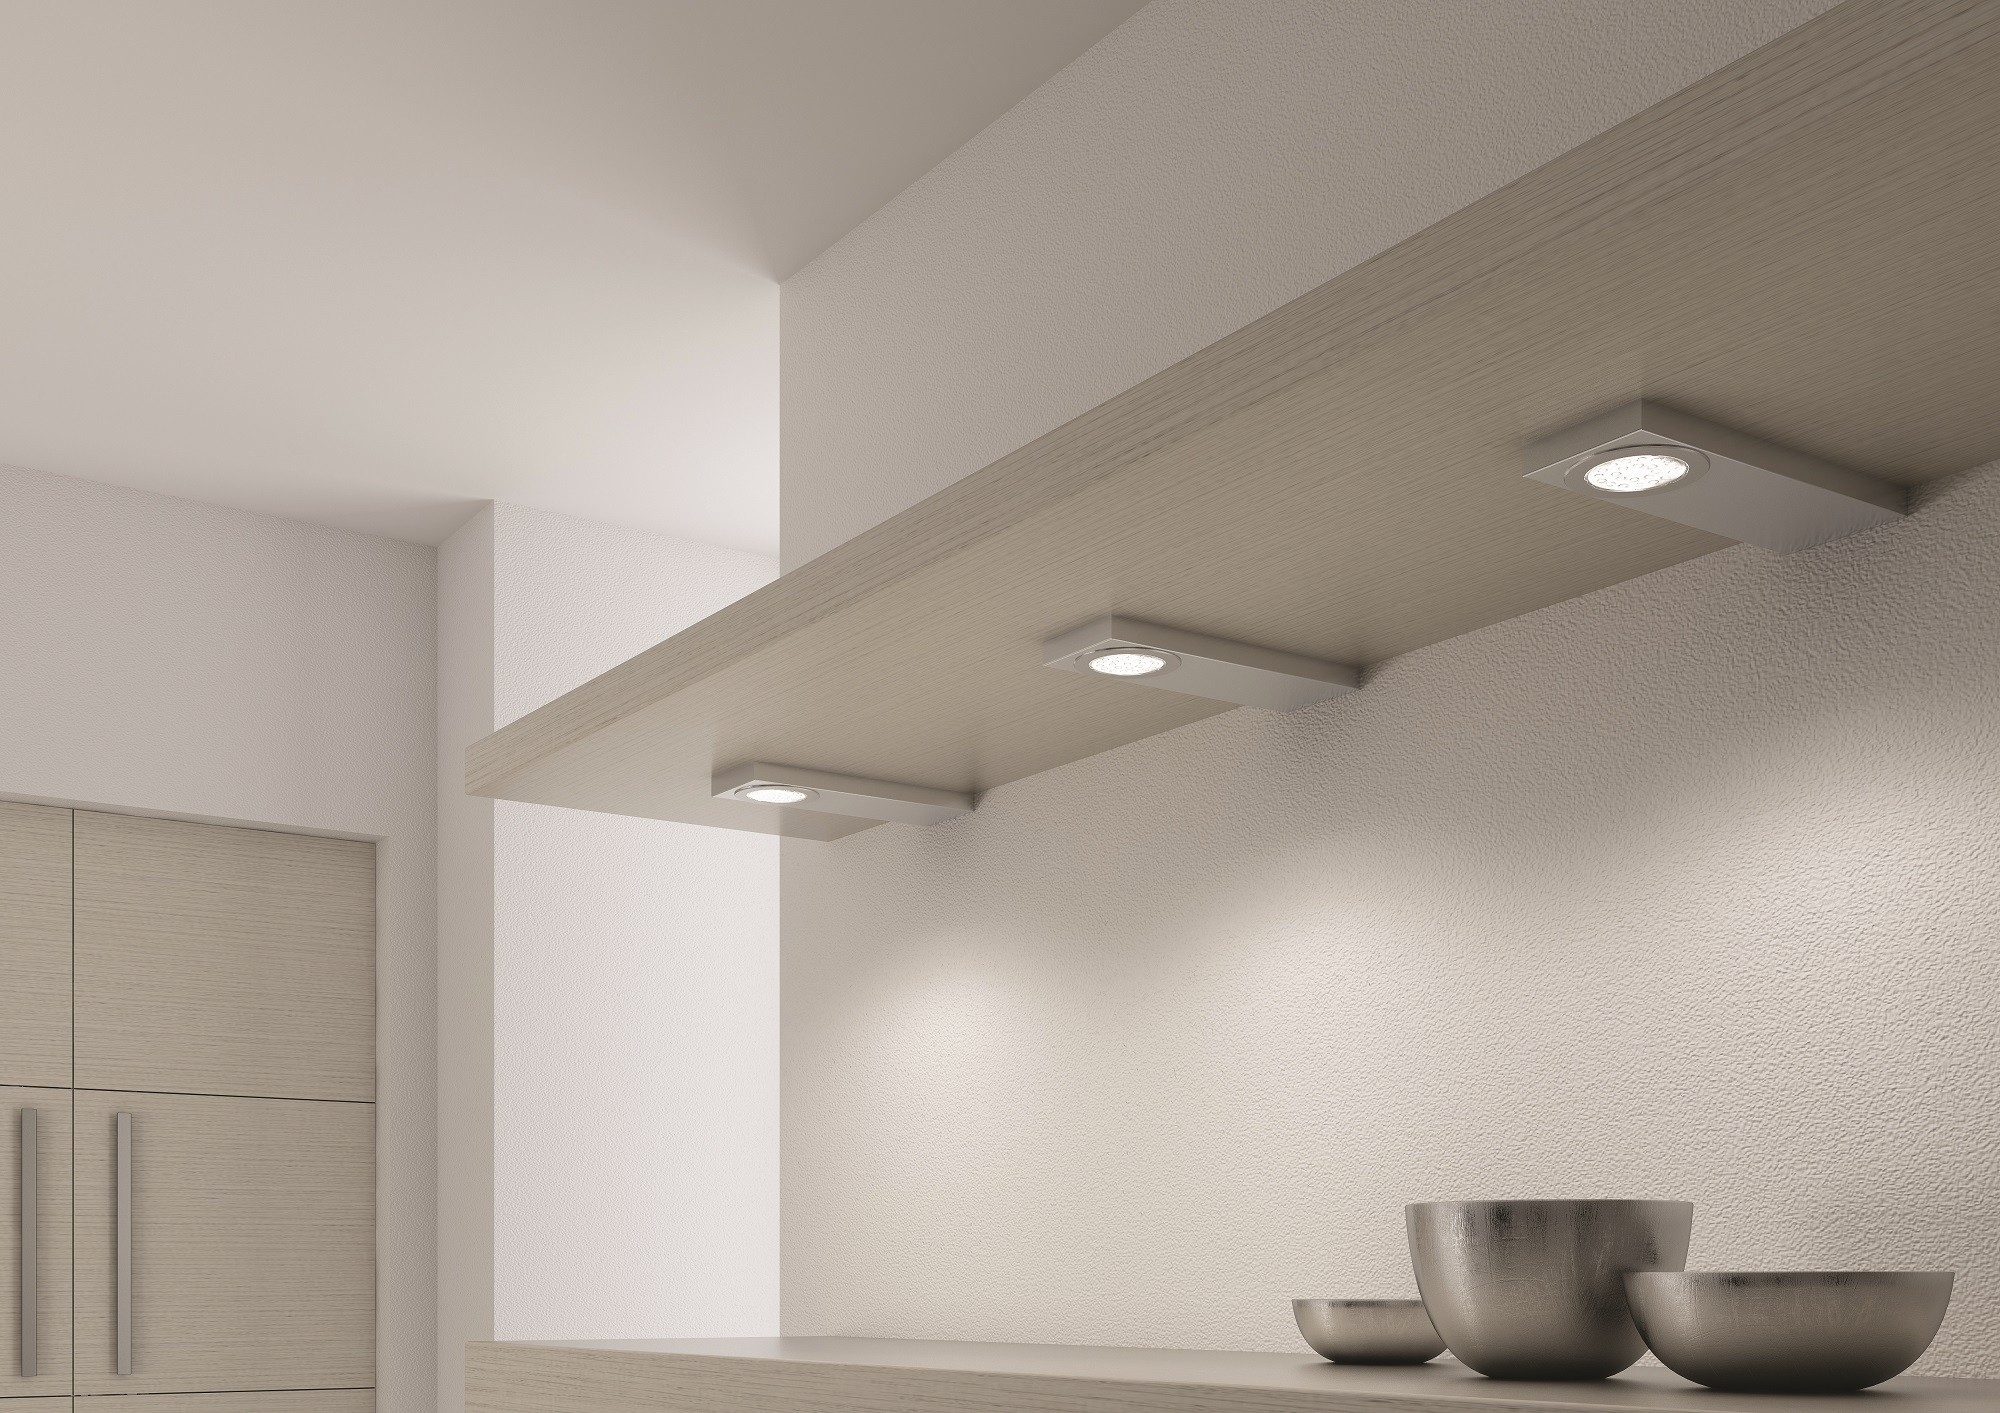 Perfect Kitchen Cabinet Lighting: Metris V12 LED Spotlights from DOMUS Line™